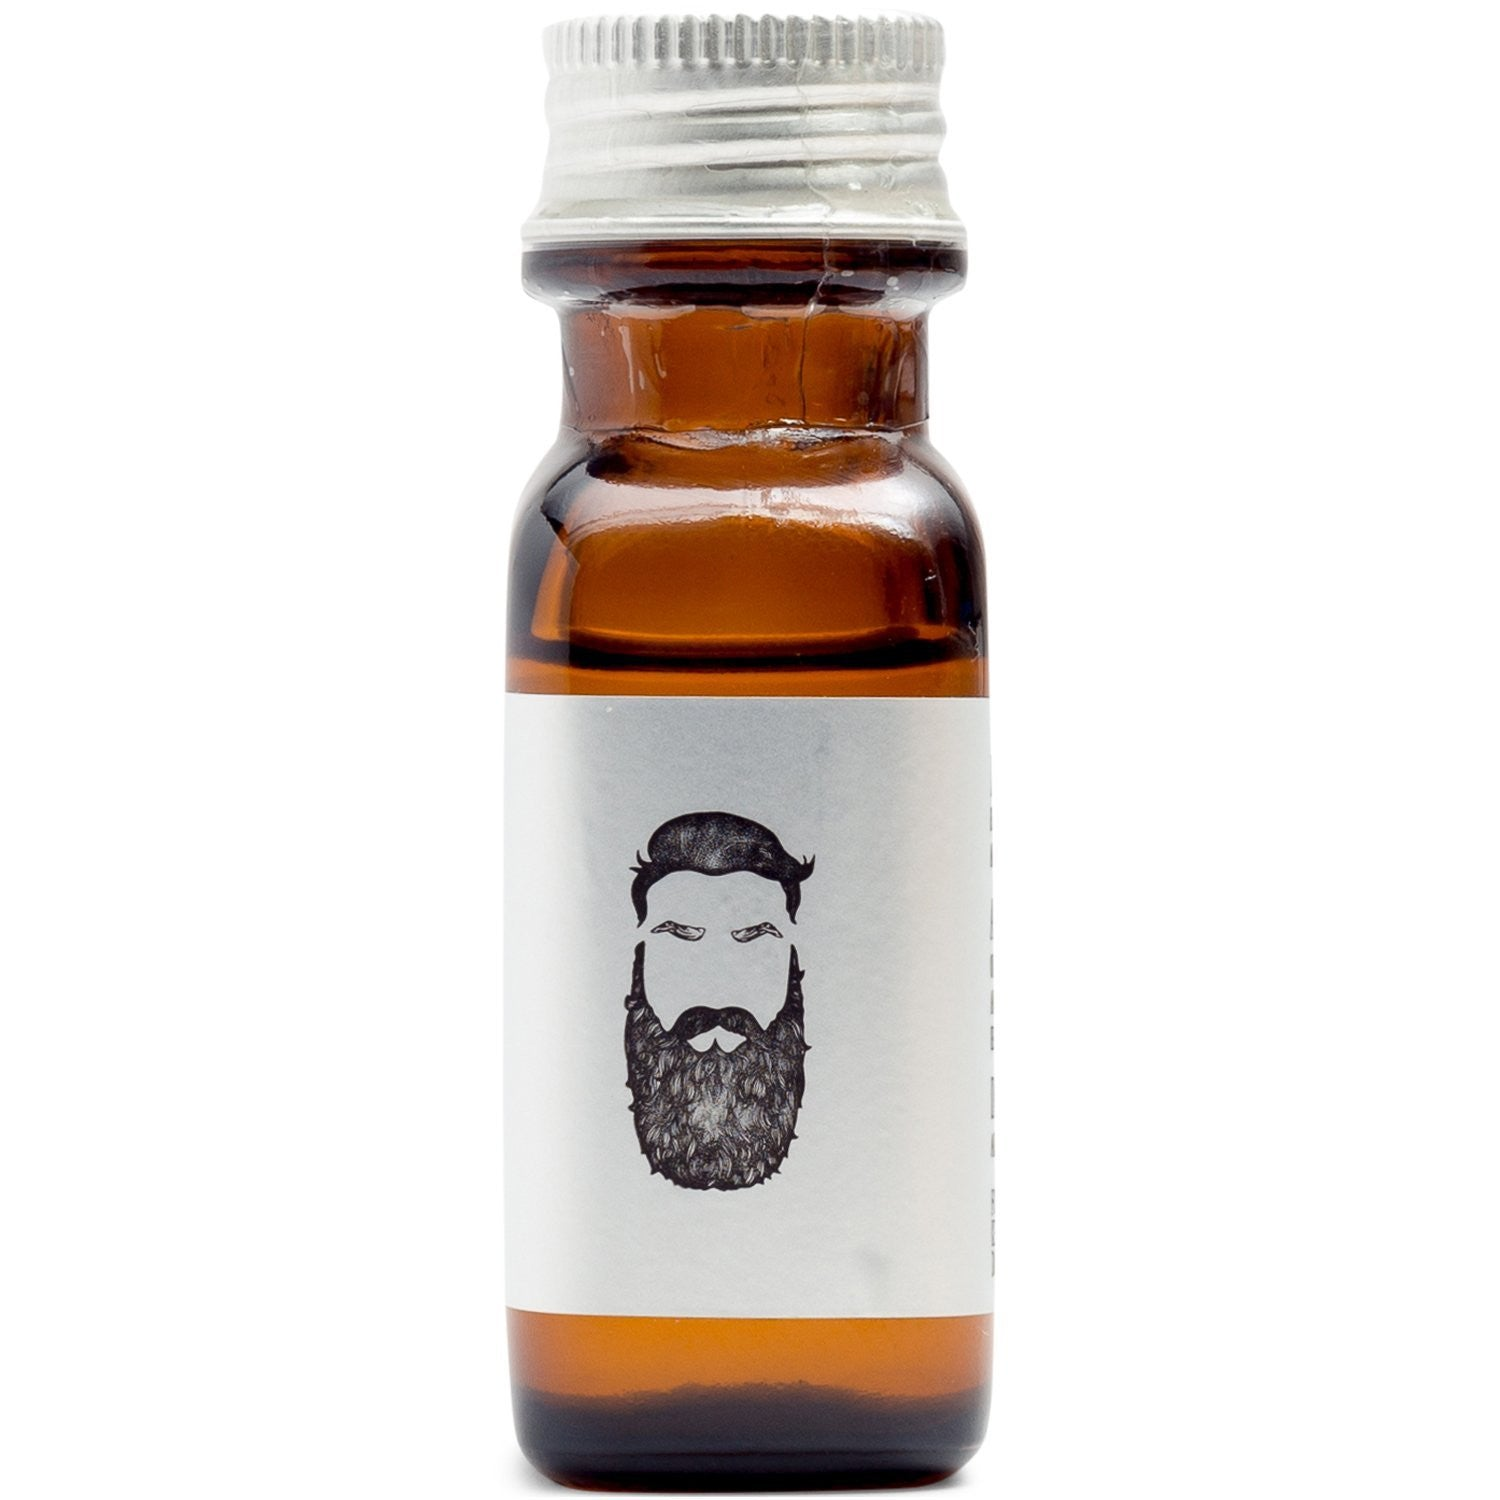 Fragrance Free Beard Oil - Pure Jojoba/Argan Oils